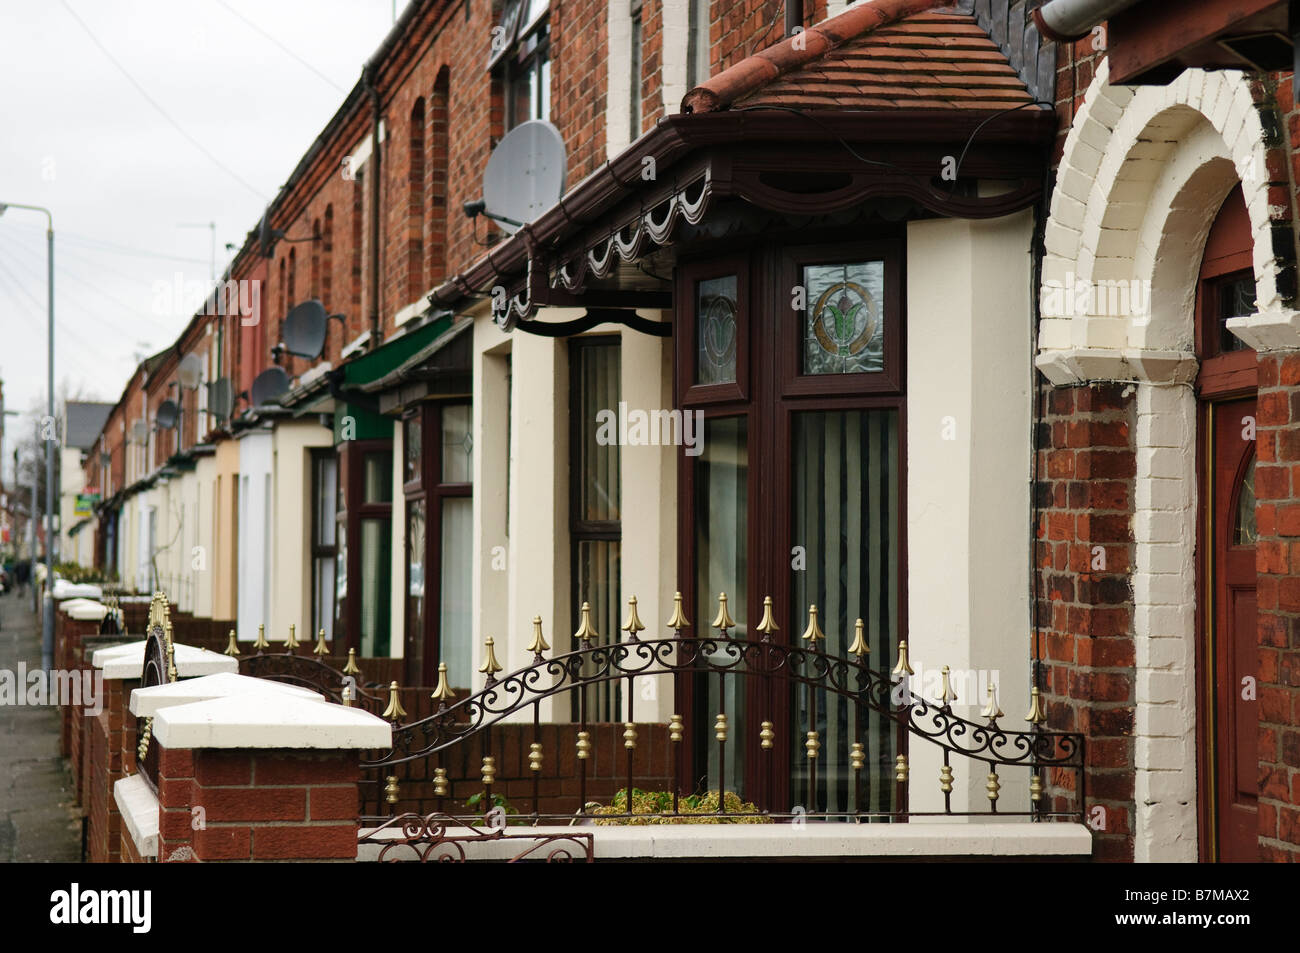 Row of terraced houses on a street in Belfast. - Stock Image